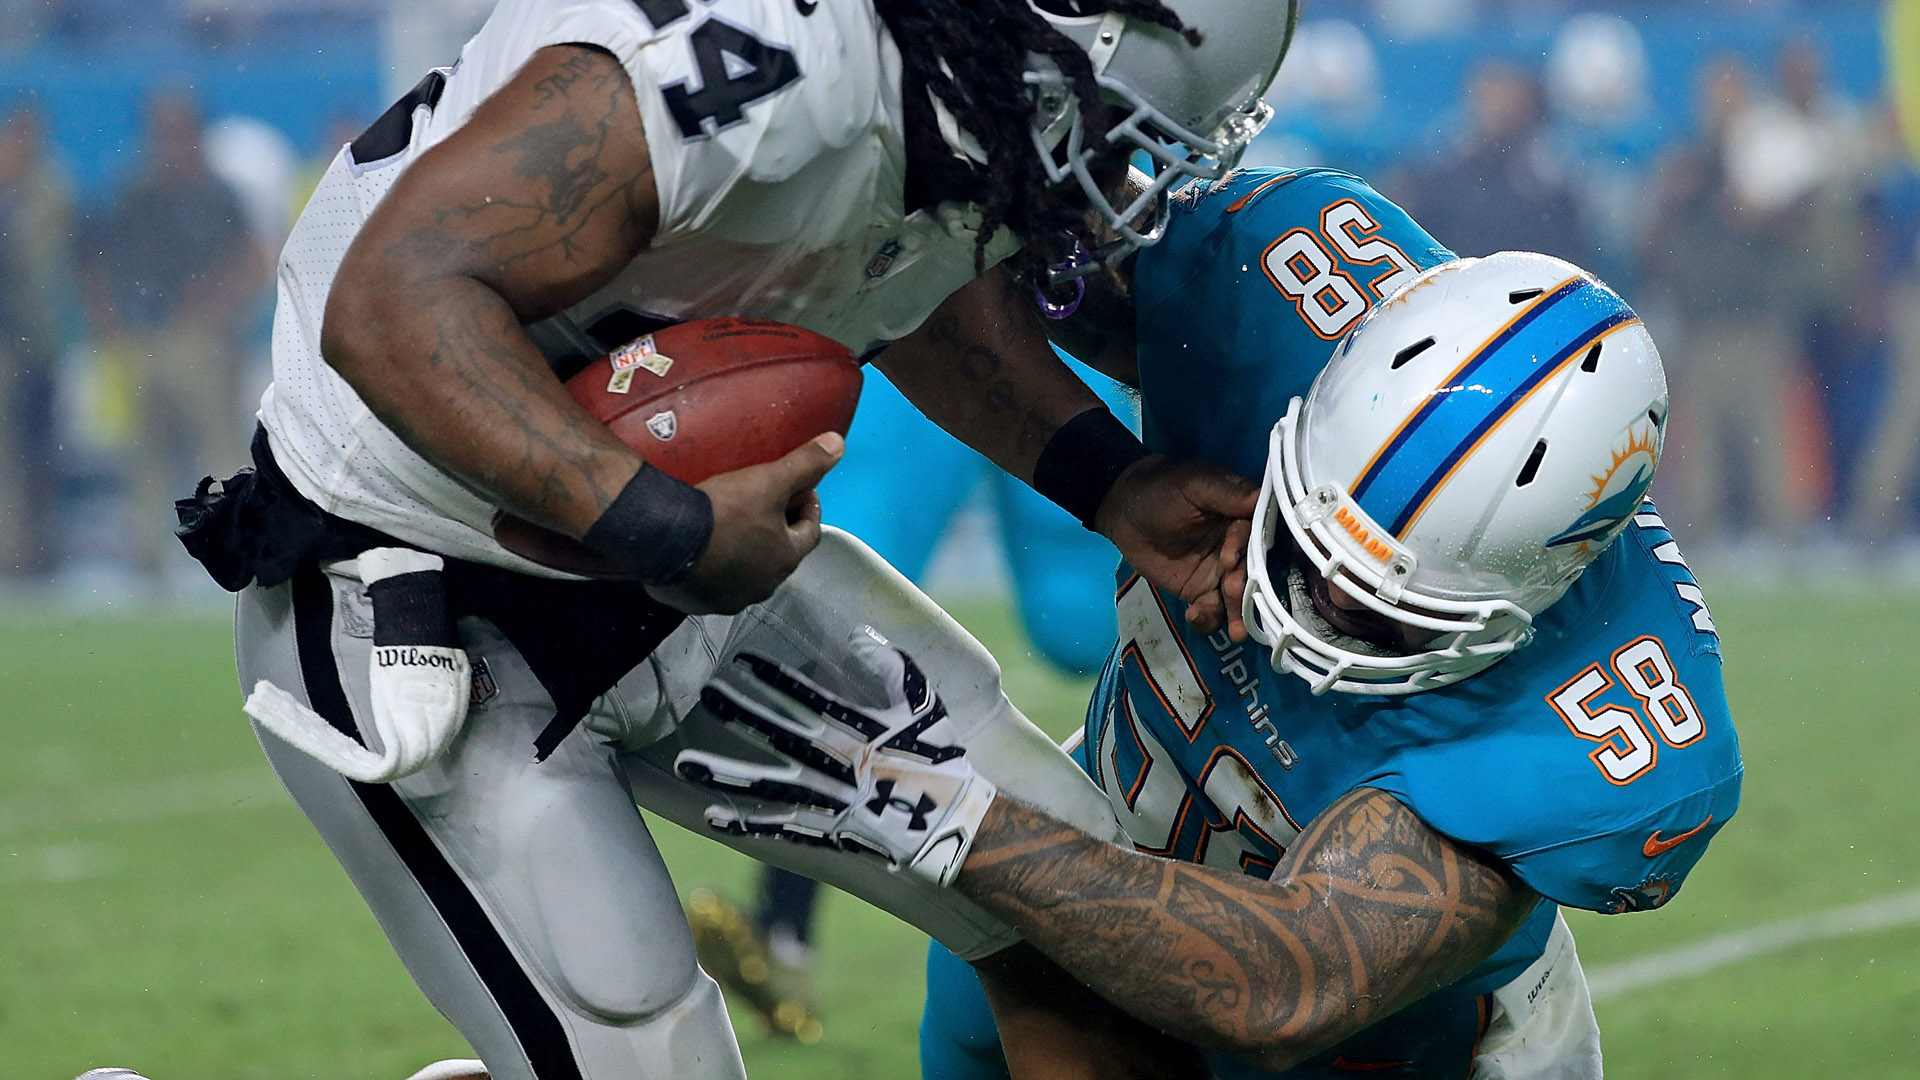 Dolphins release LB Rey Maualuga after overnight arrest in Miami